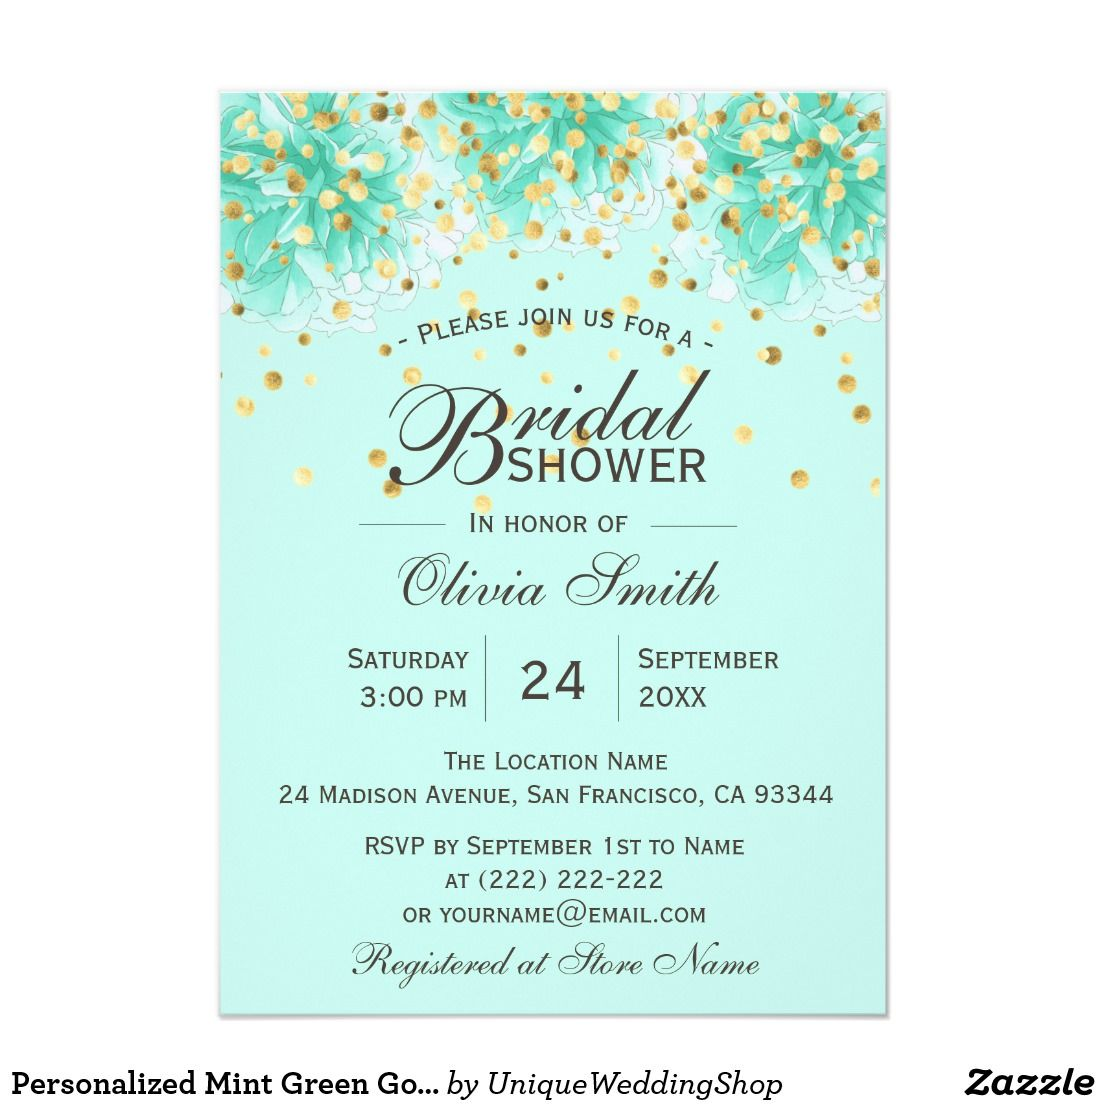 Personalized Mint Green Gold Floral Bridal Shower Invitation